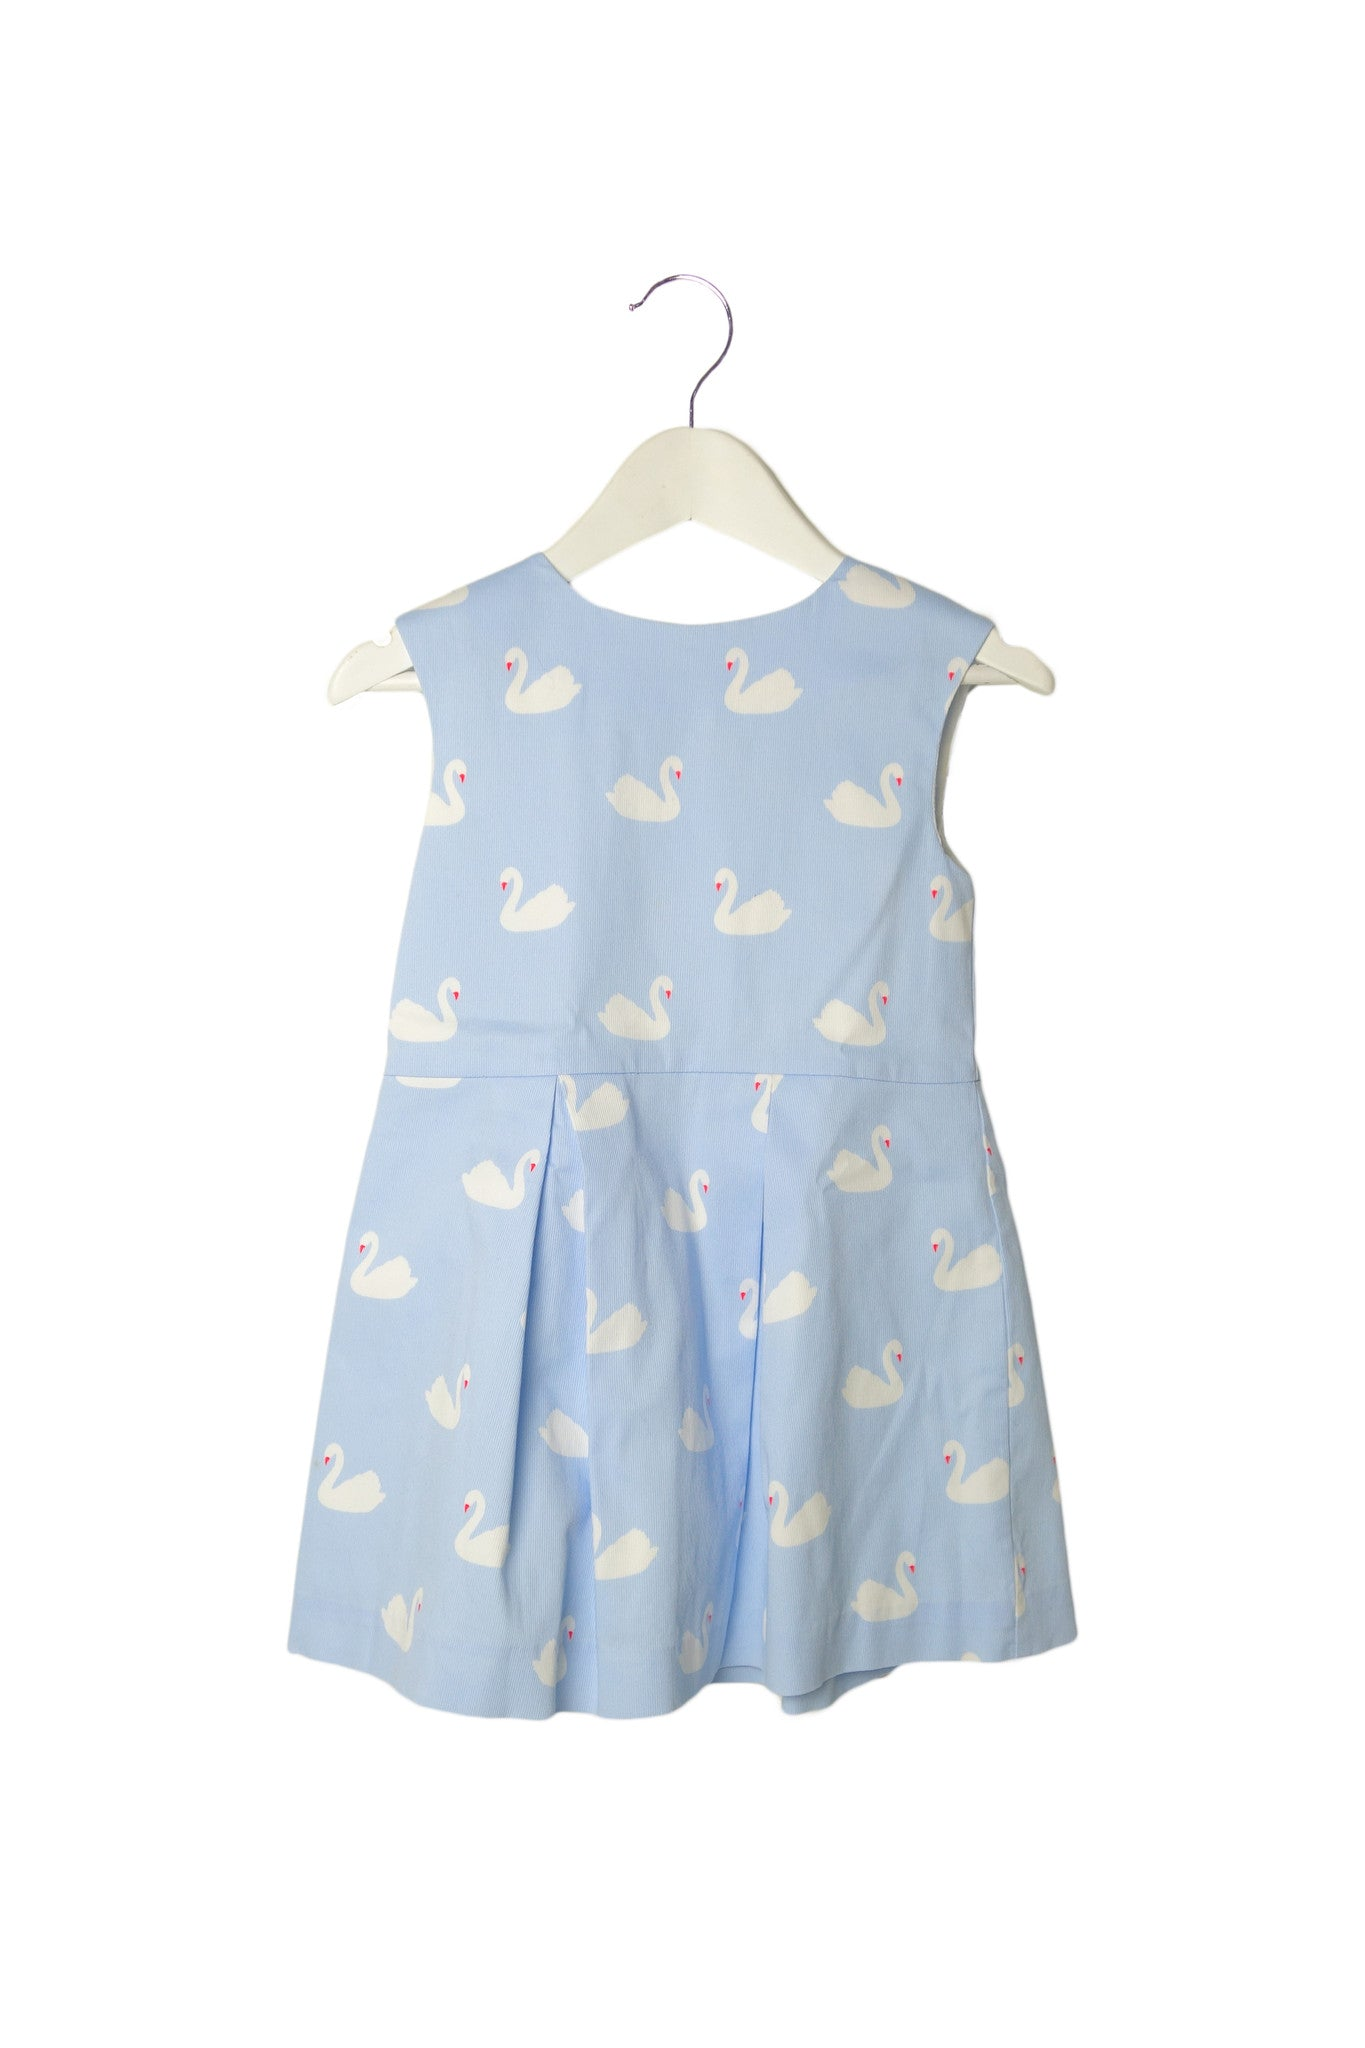 10002547 Jacadi Kids~Dress 4T at Retykle